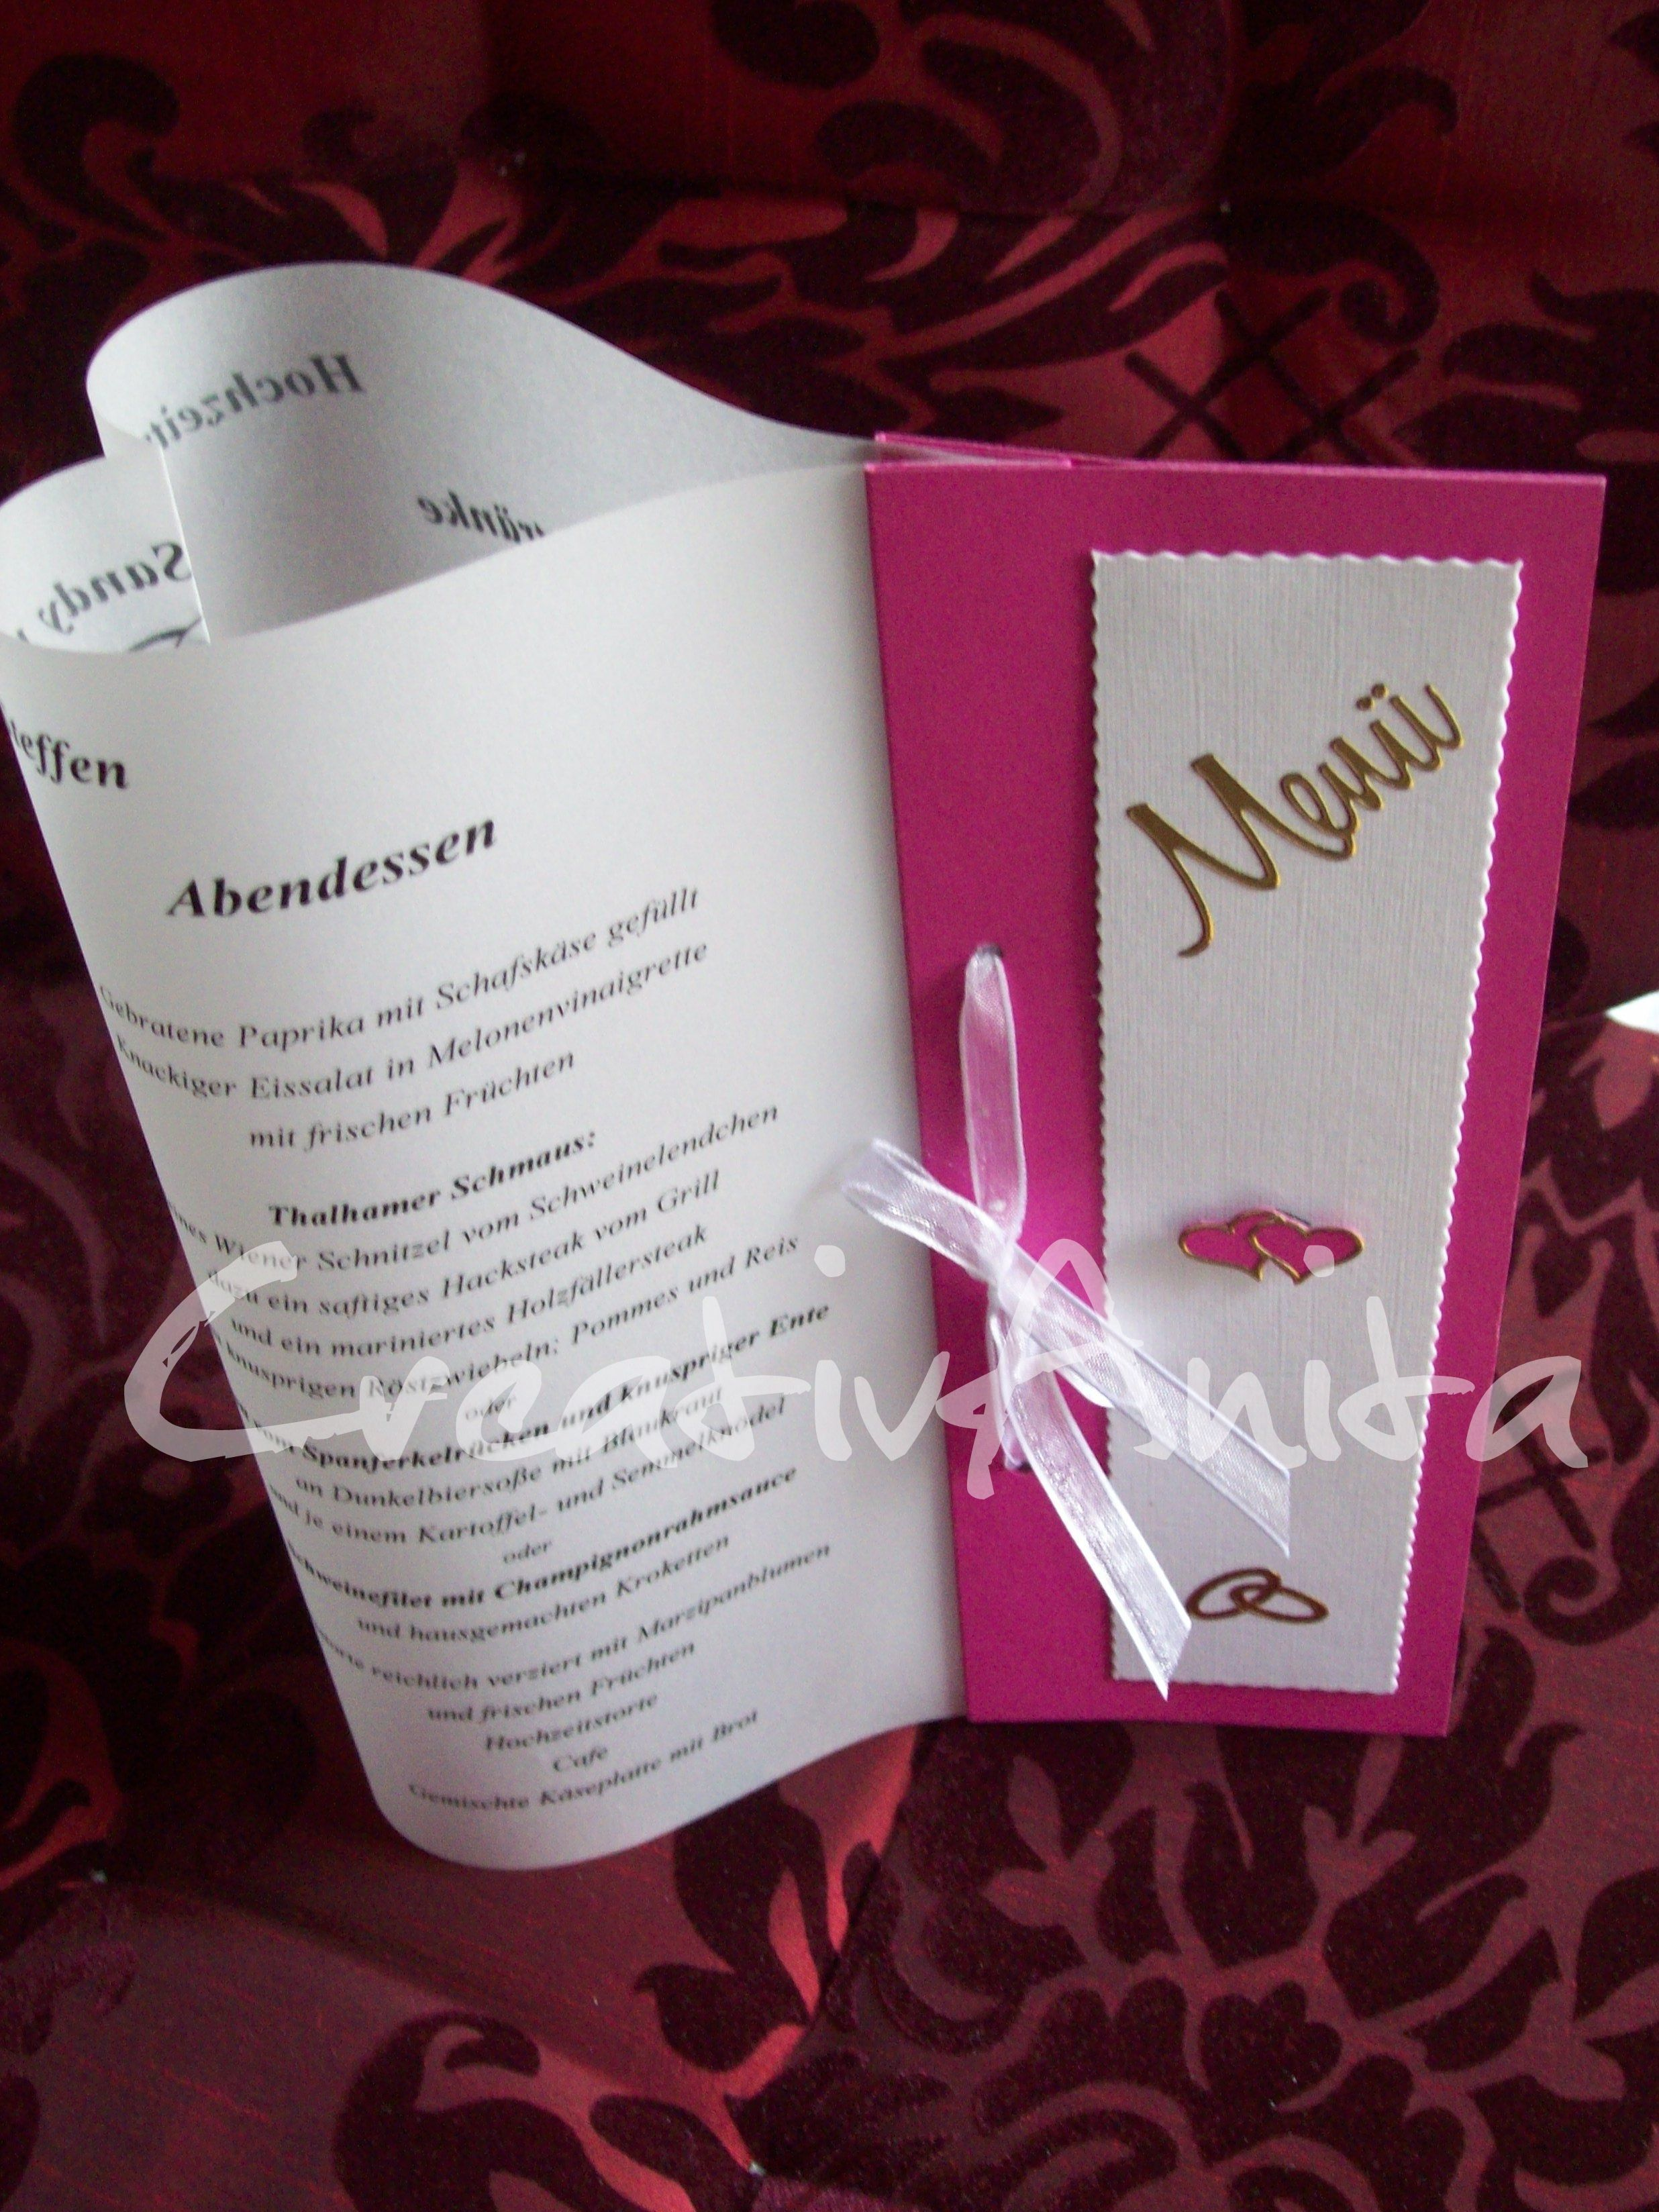 Tischkarten Glas Menükarte In Herzform! -pink-weiß- | Wedding Ideas